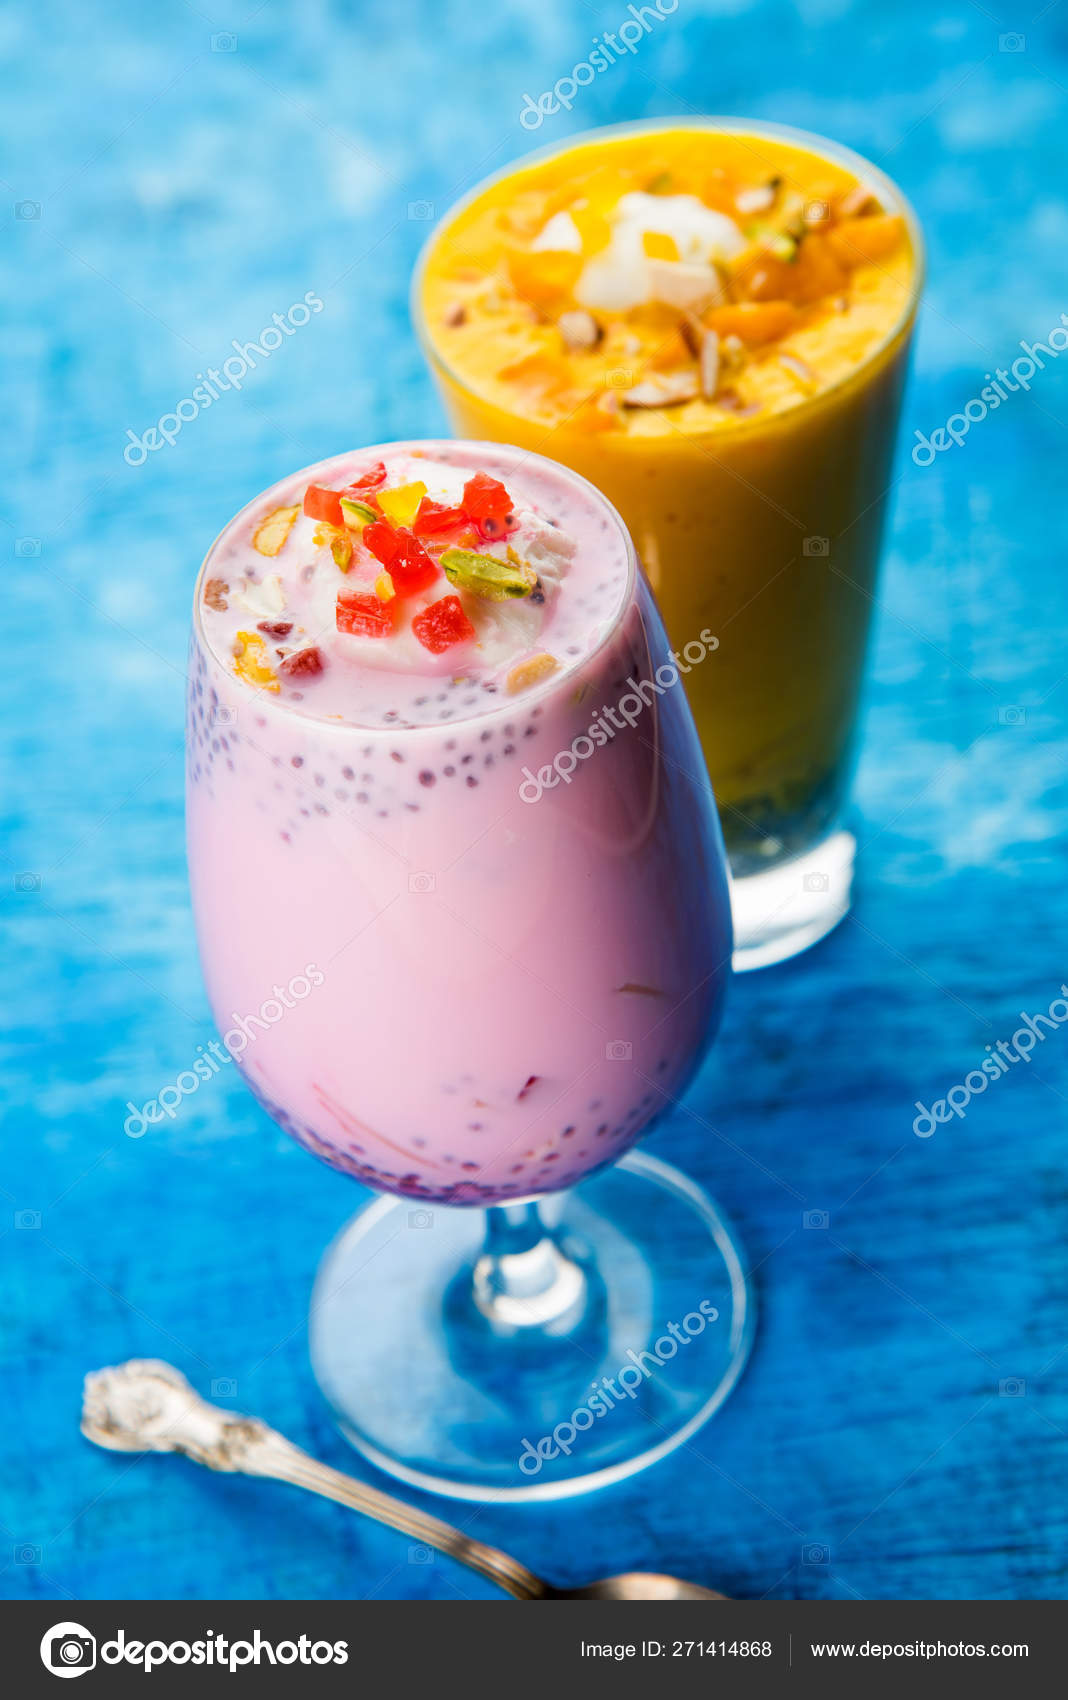 Falooda Faluda Popular Indian Dessert Strawberry Mango Flavoured Which Has Stock Photo Image By C Arundhati Callistainteriors In 271414868